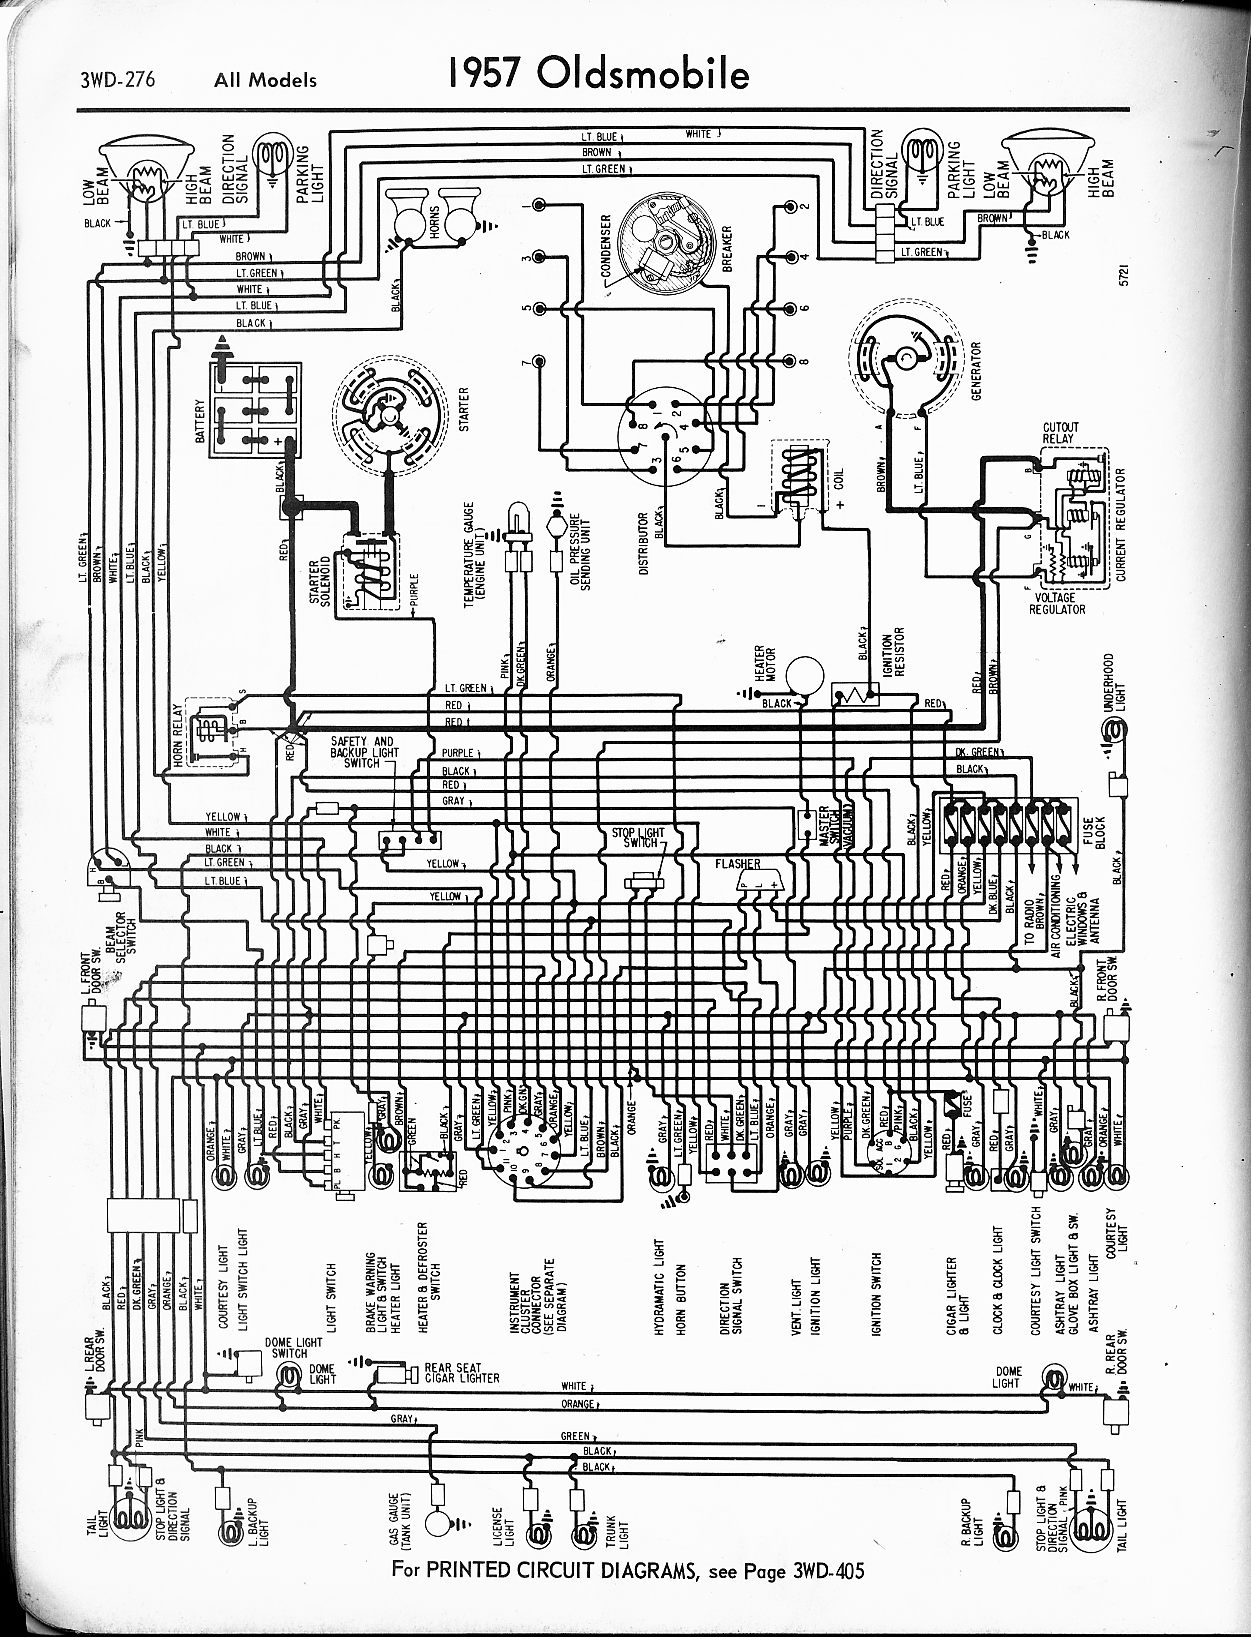 Wiring Diagram 1969 Oldsmobile 442 Detailed Schematics 1986 Diagrams The Old Car Manual Project